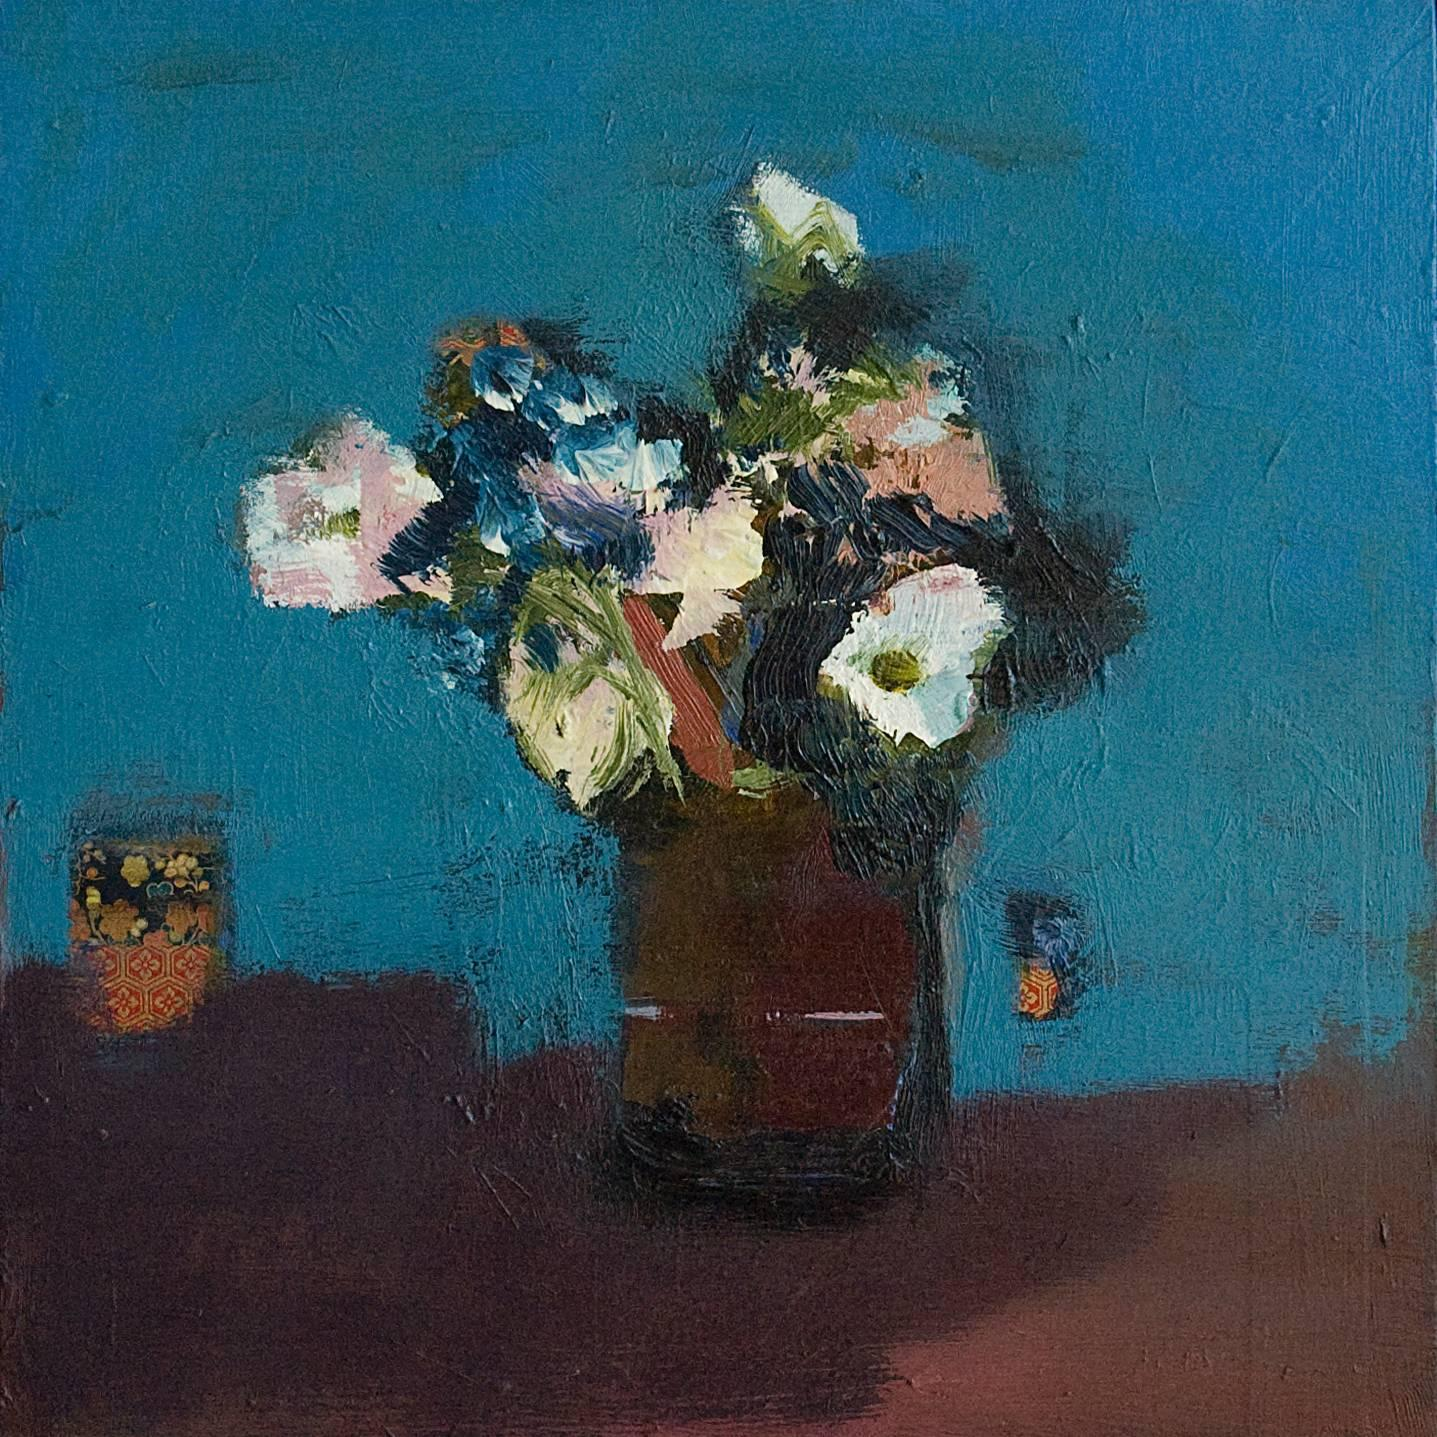 Brown Vase with White Flowers - small blue, green, figurative still life oil